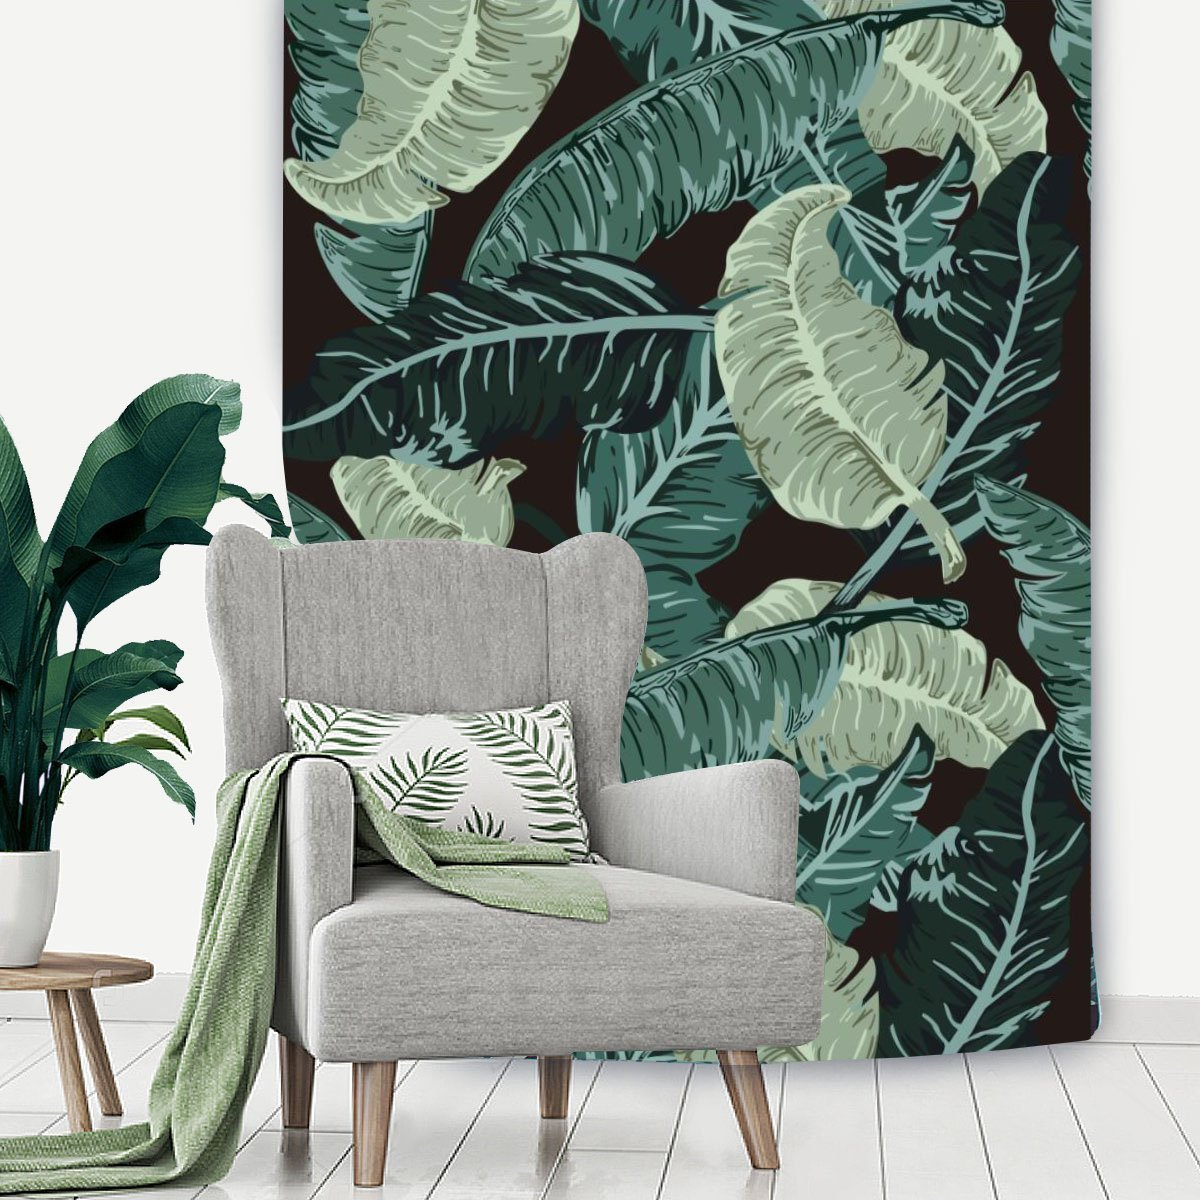 Green Tropical Cactus Palm Tree Leaves Flower Decorative